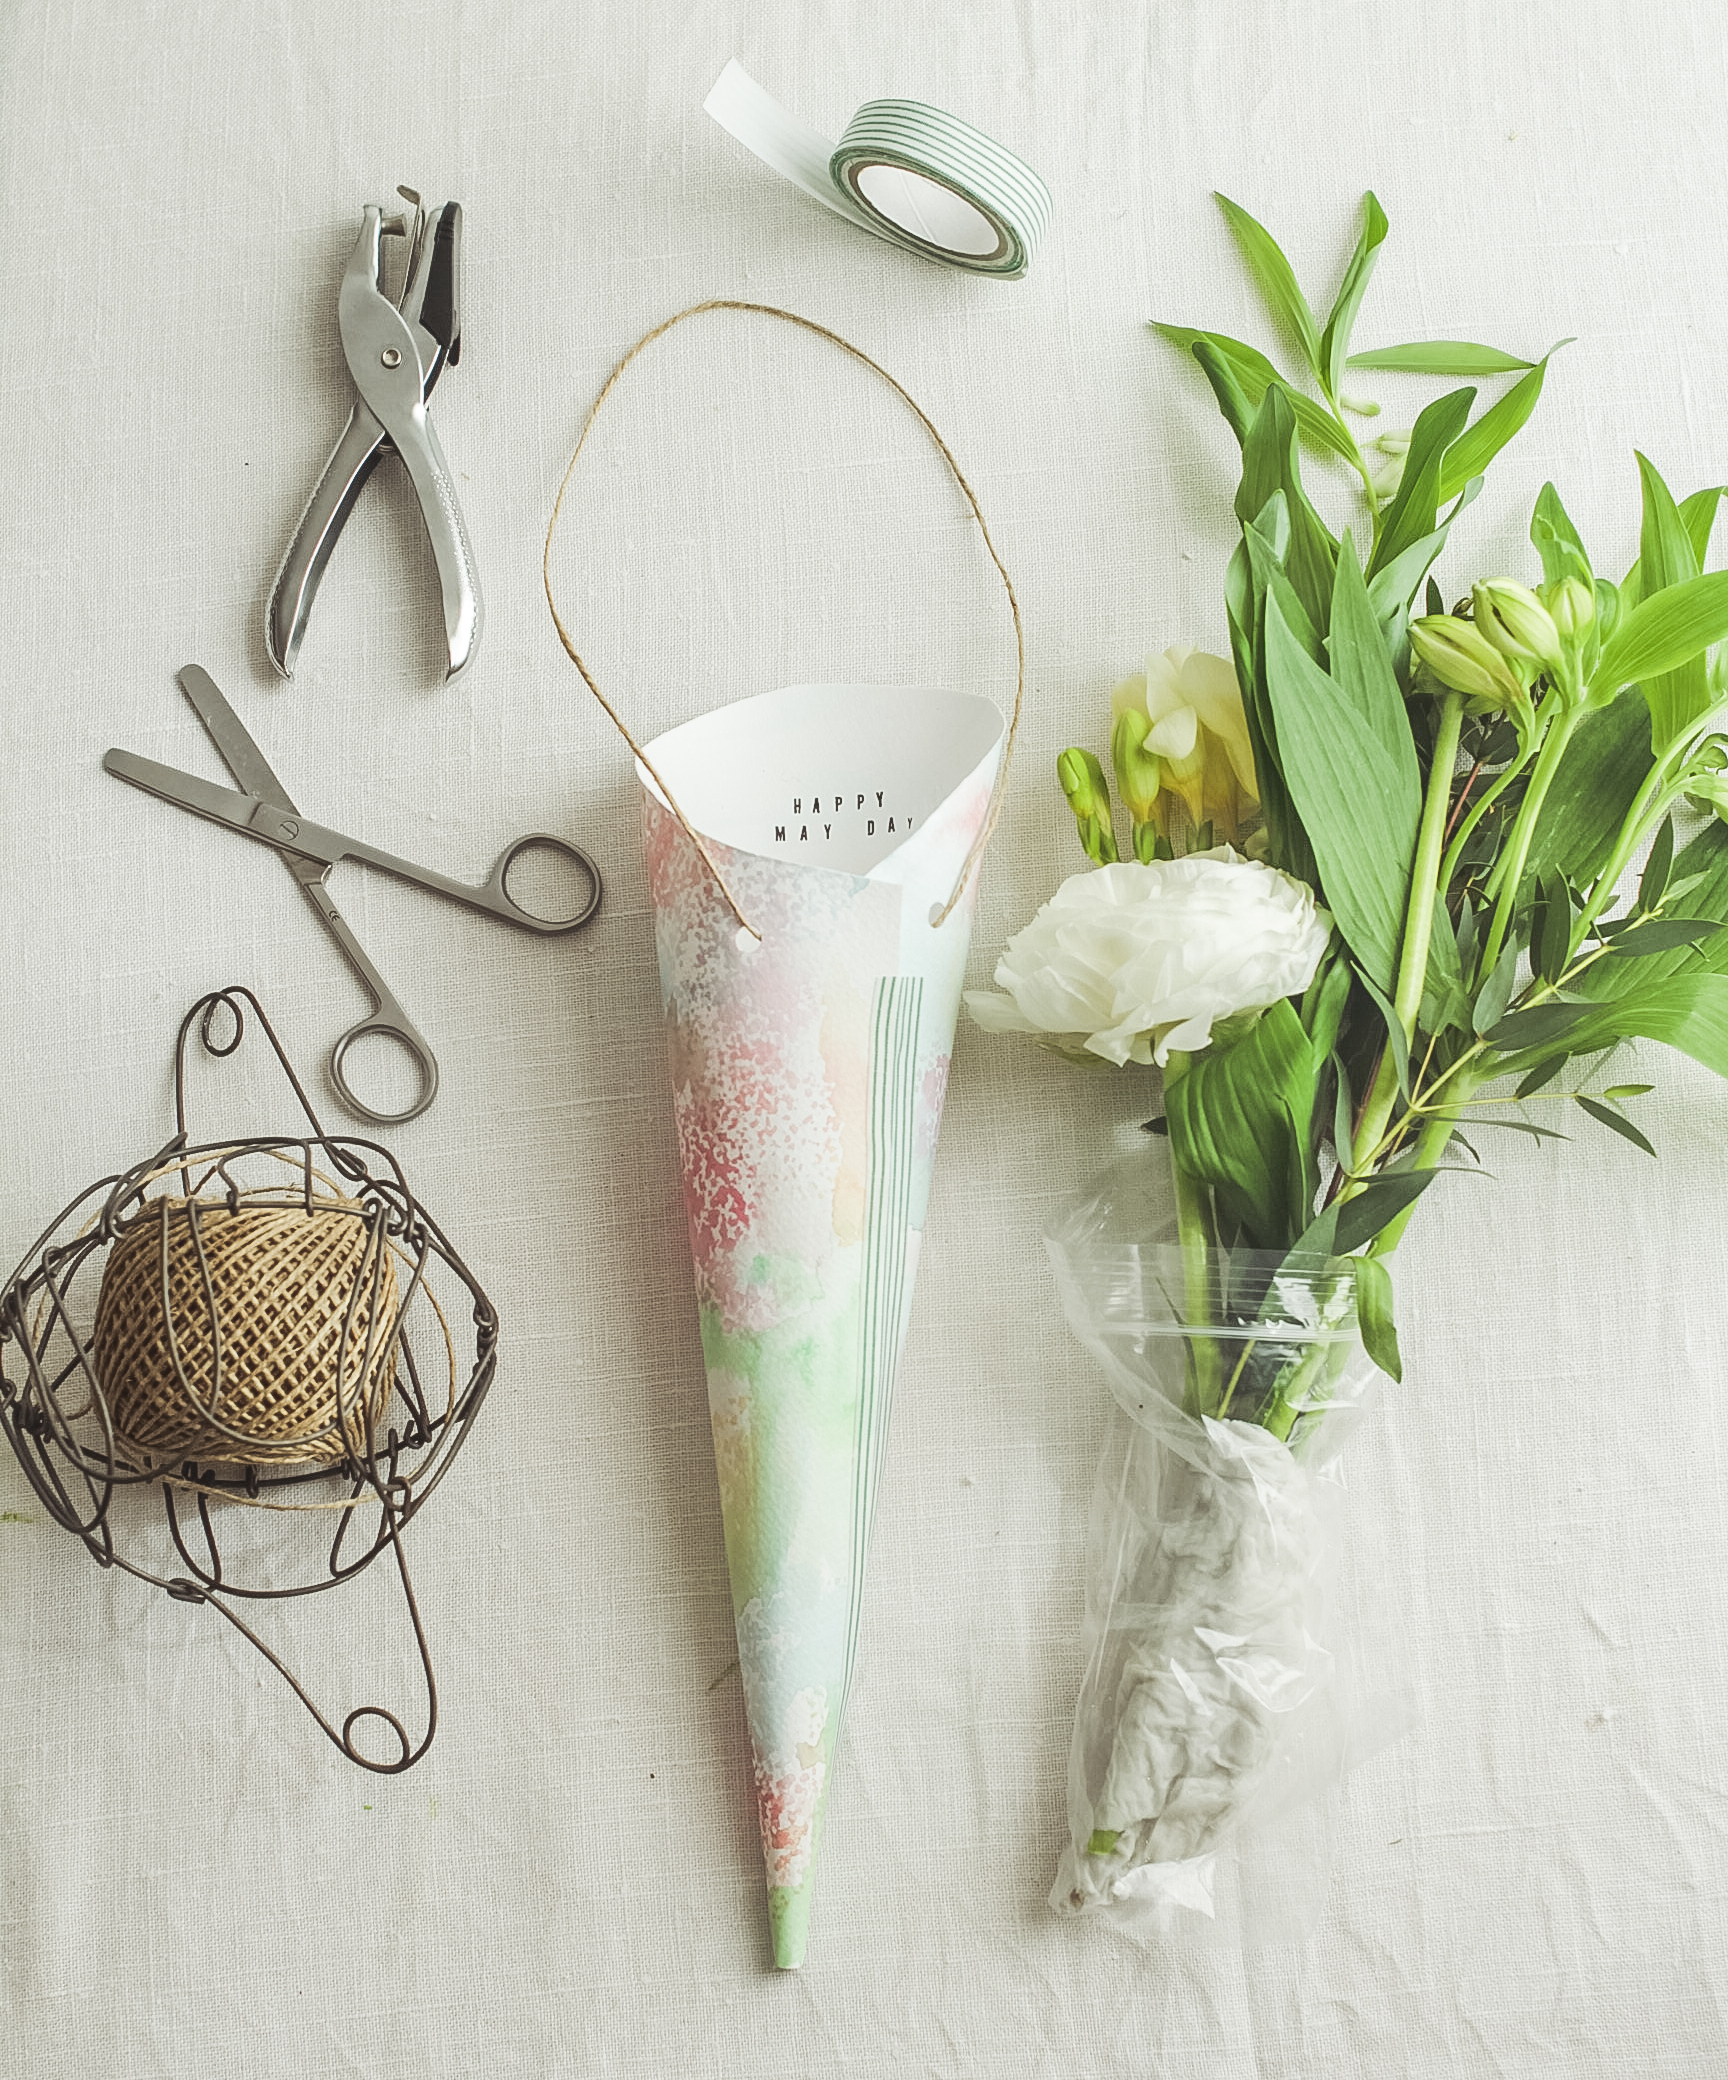 Making cones for May Day Posies | Seeds and Stitches blog